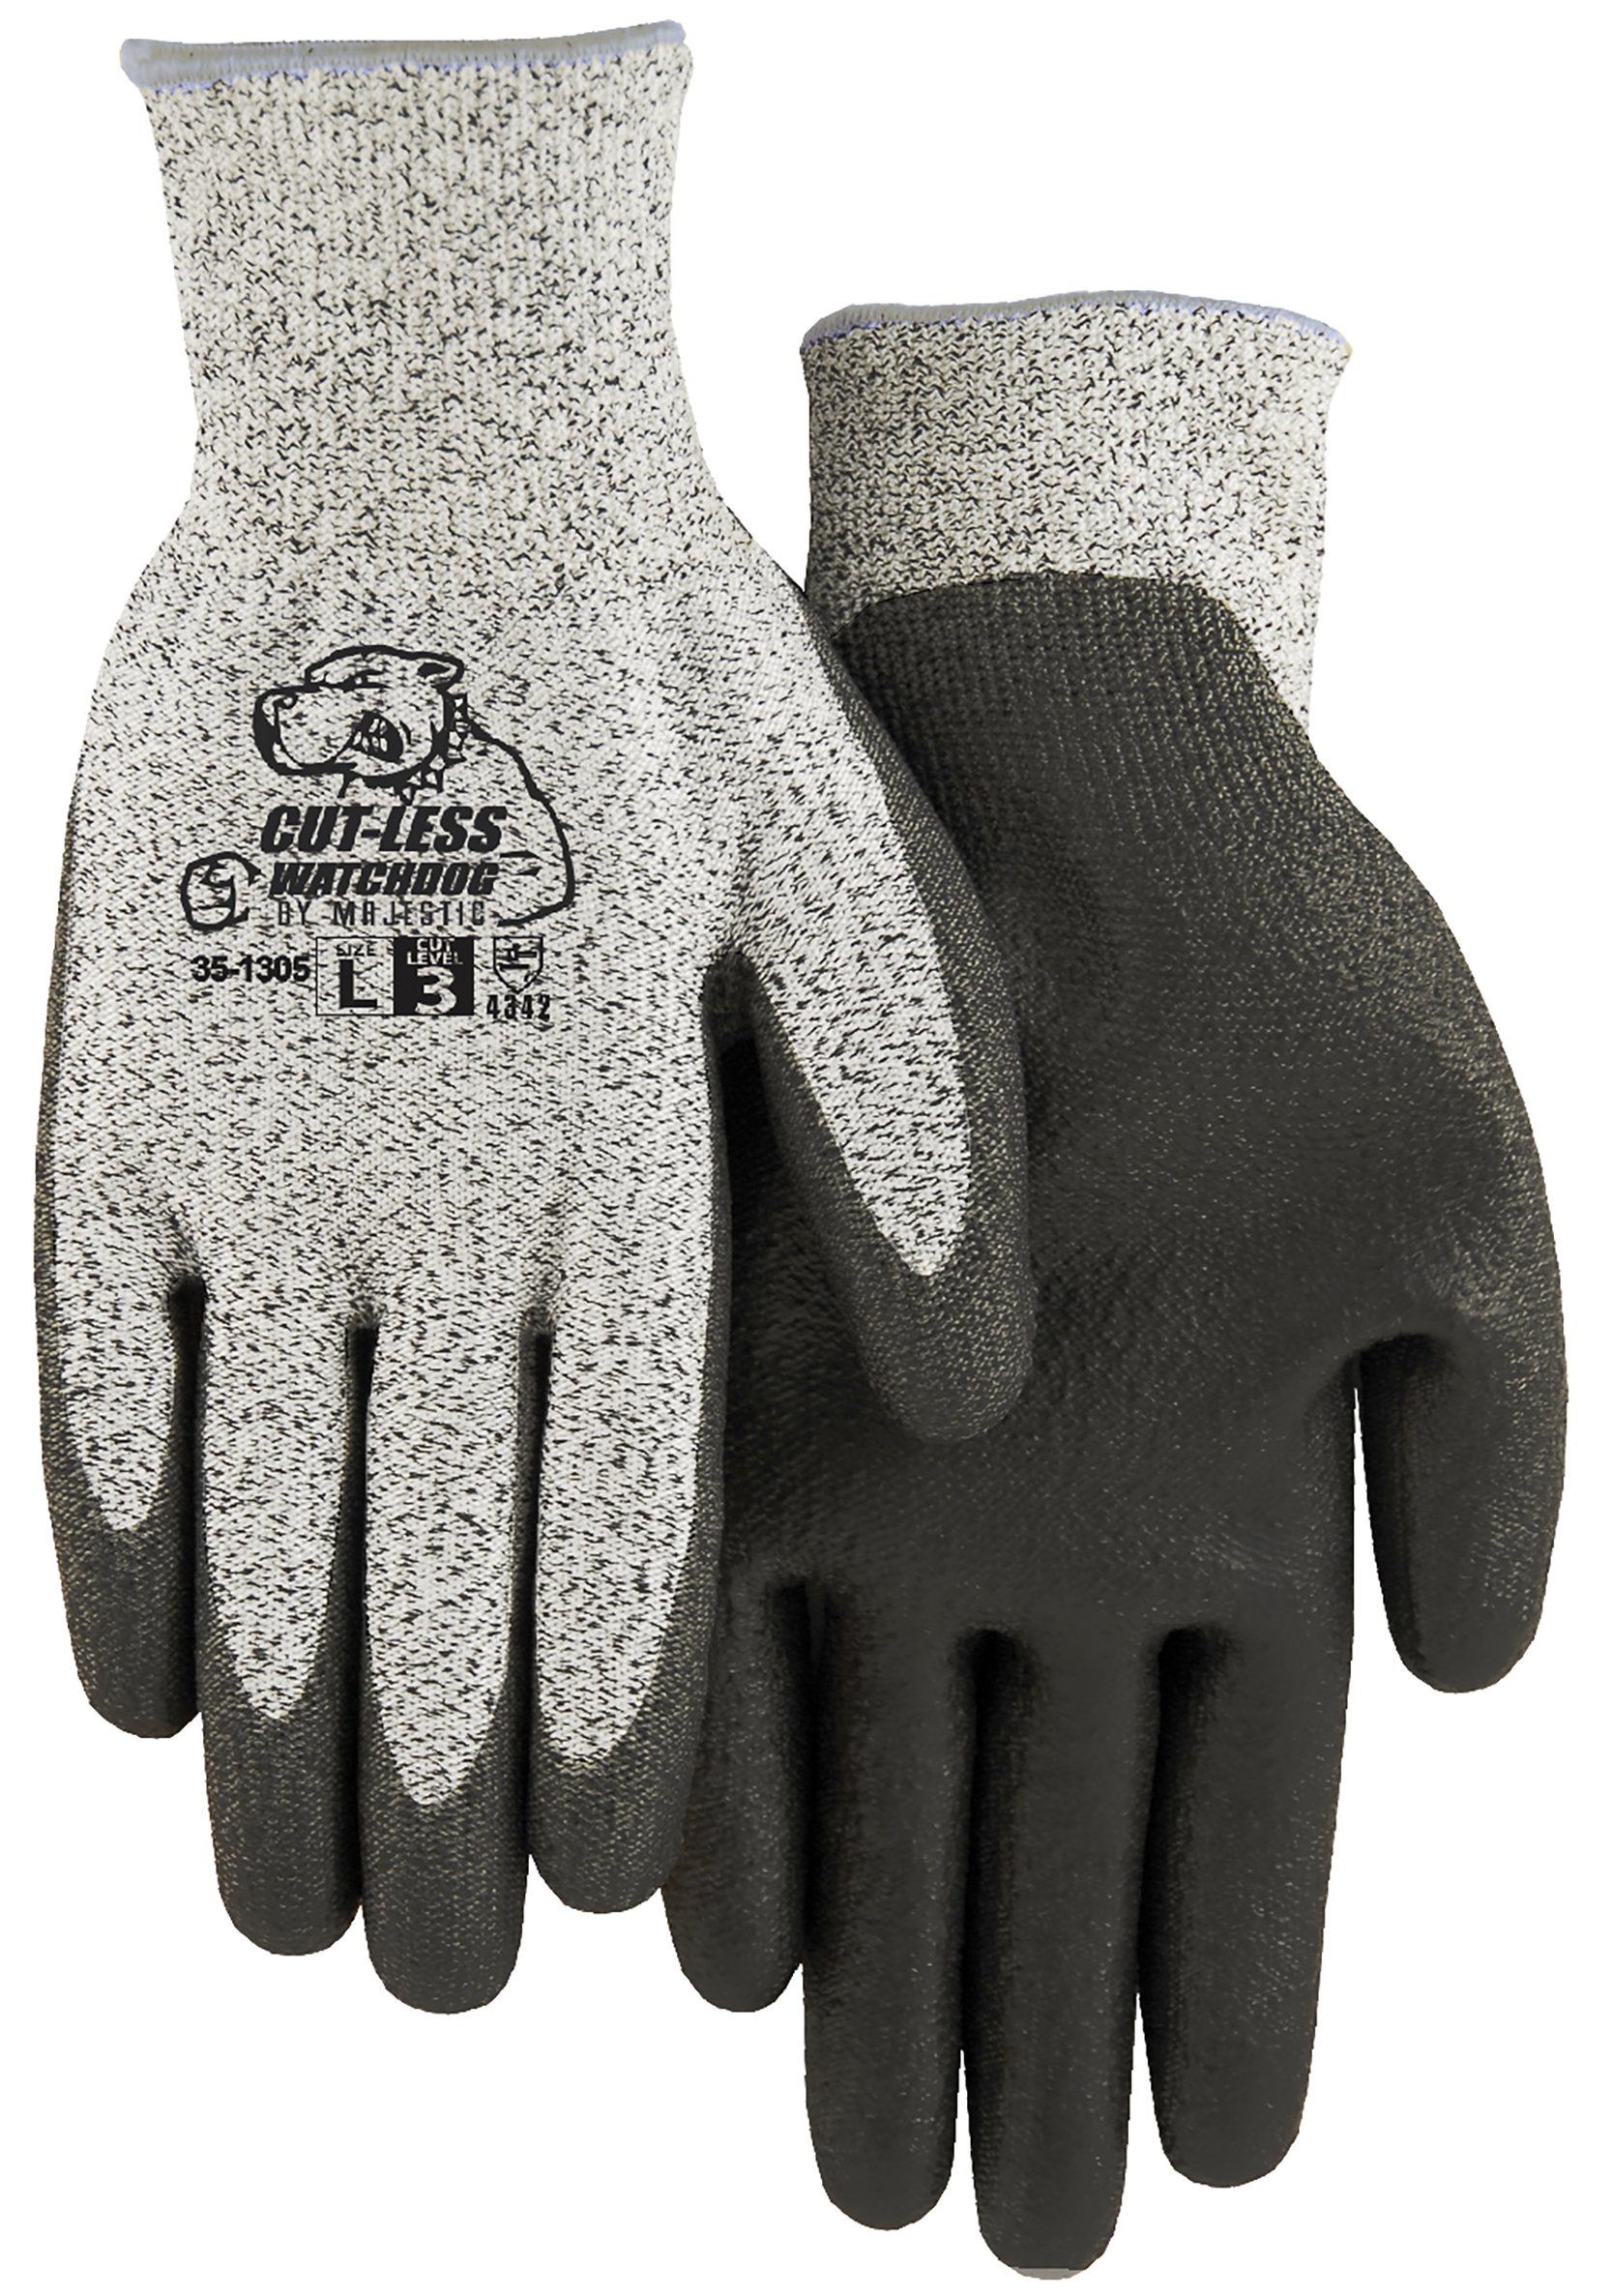 Majestic Glove 35-1305/M HPPE Knit with Gray Polyurethane Palm, CE3, ANSI2, Medium (Pack of 12)